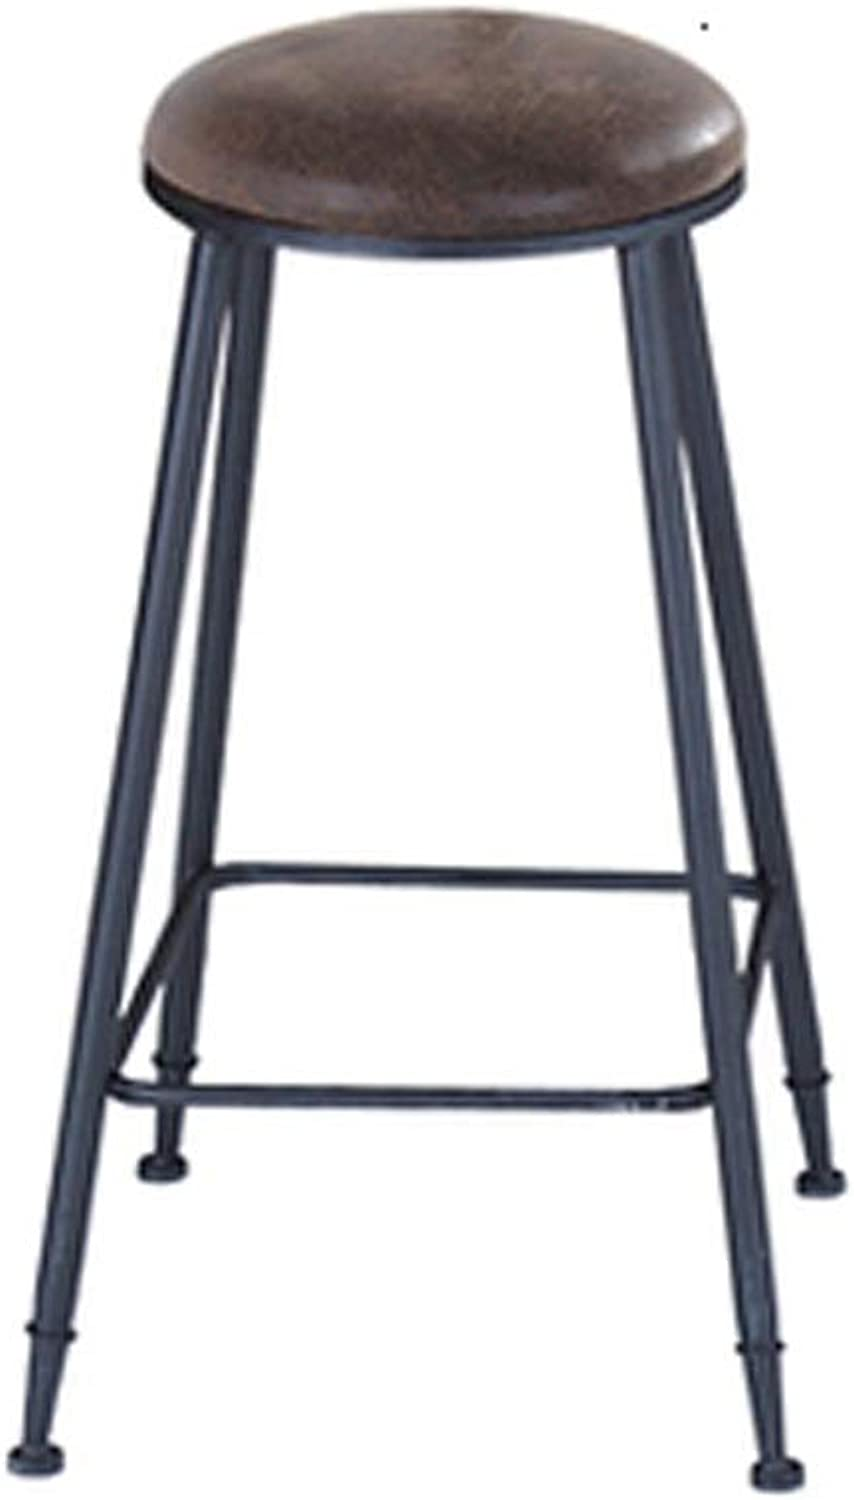 Barstool Bar stools American Wrought Iron stools stools high stools with Cushions Without Cushions 2 Kinds (color   B)